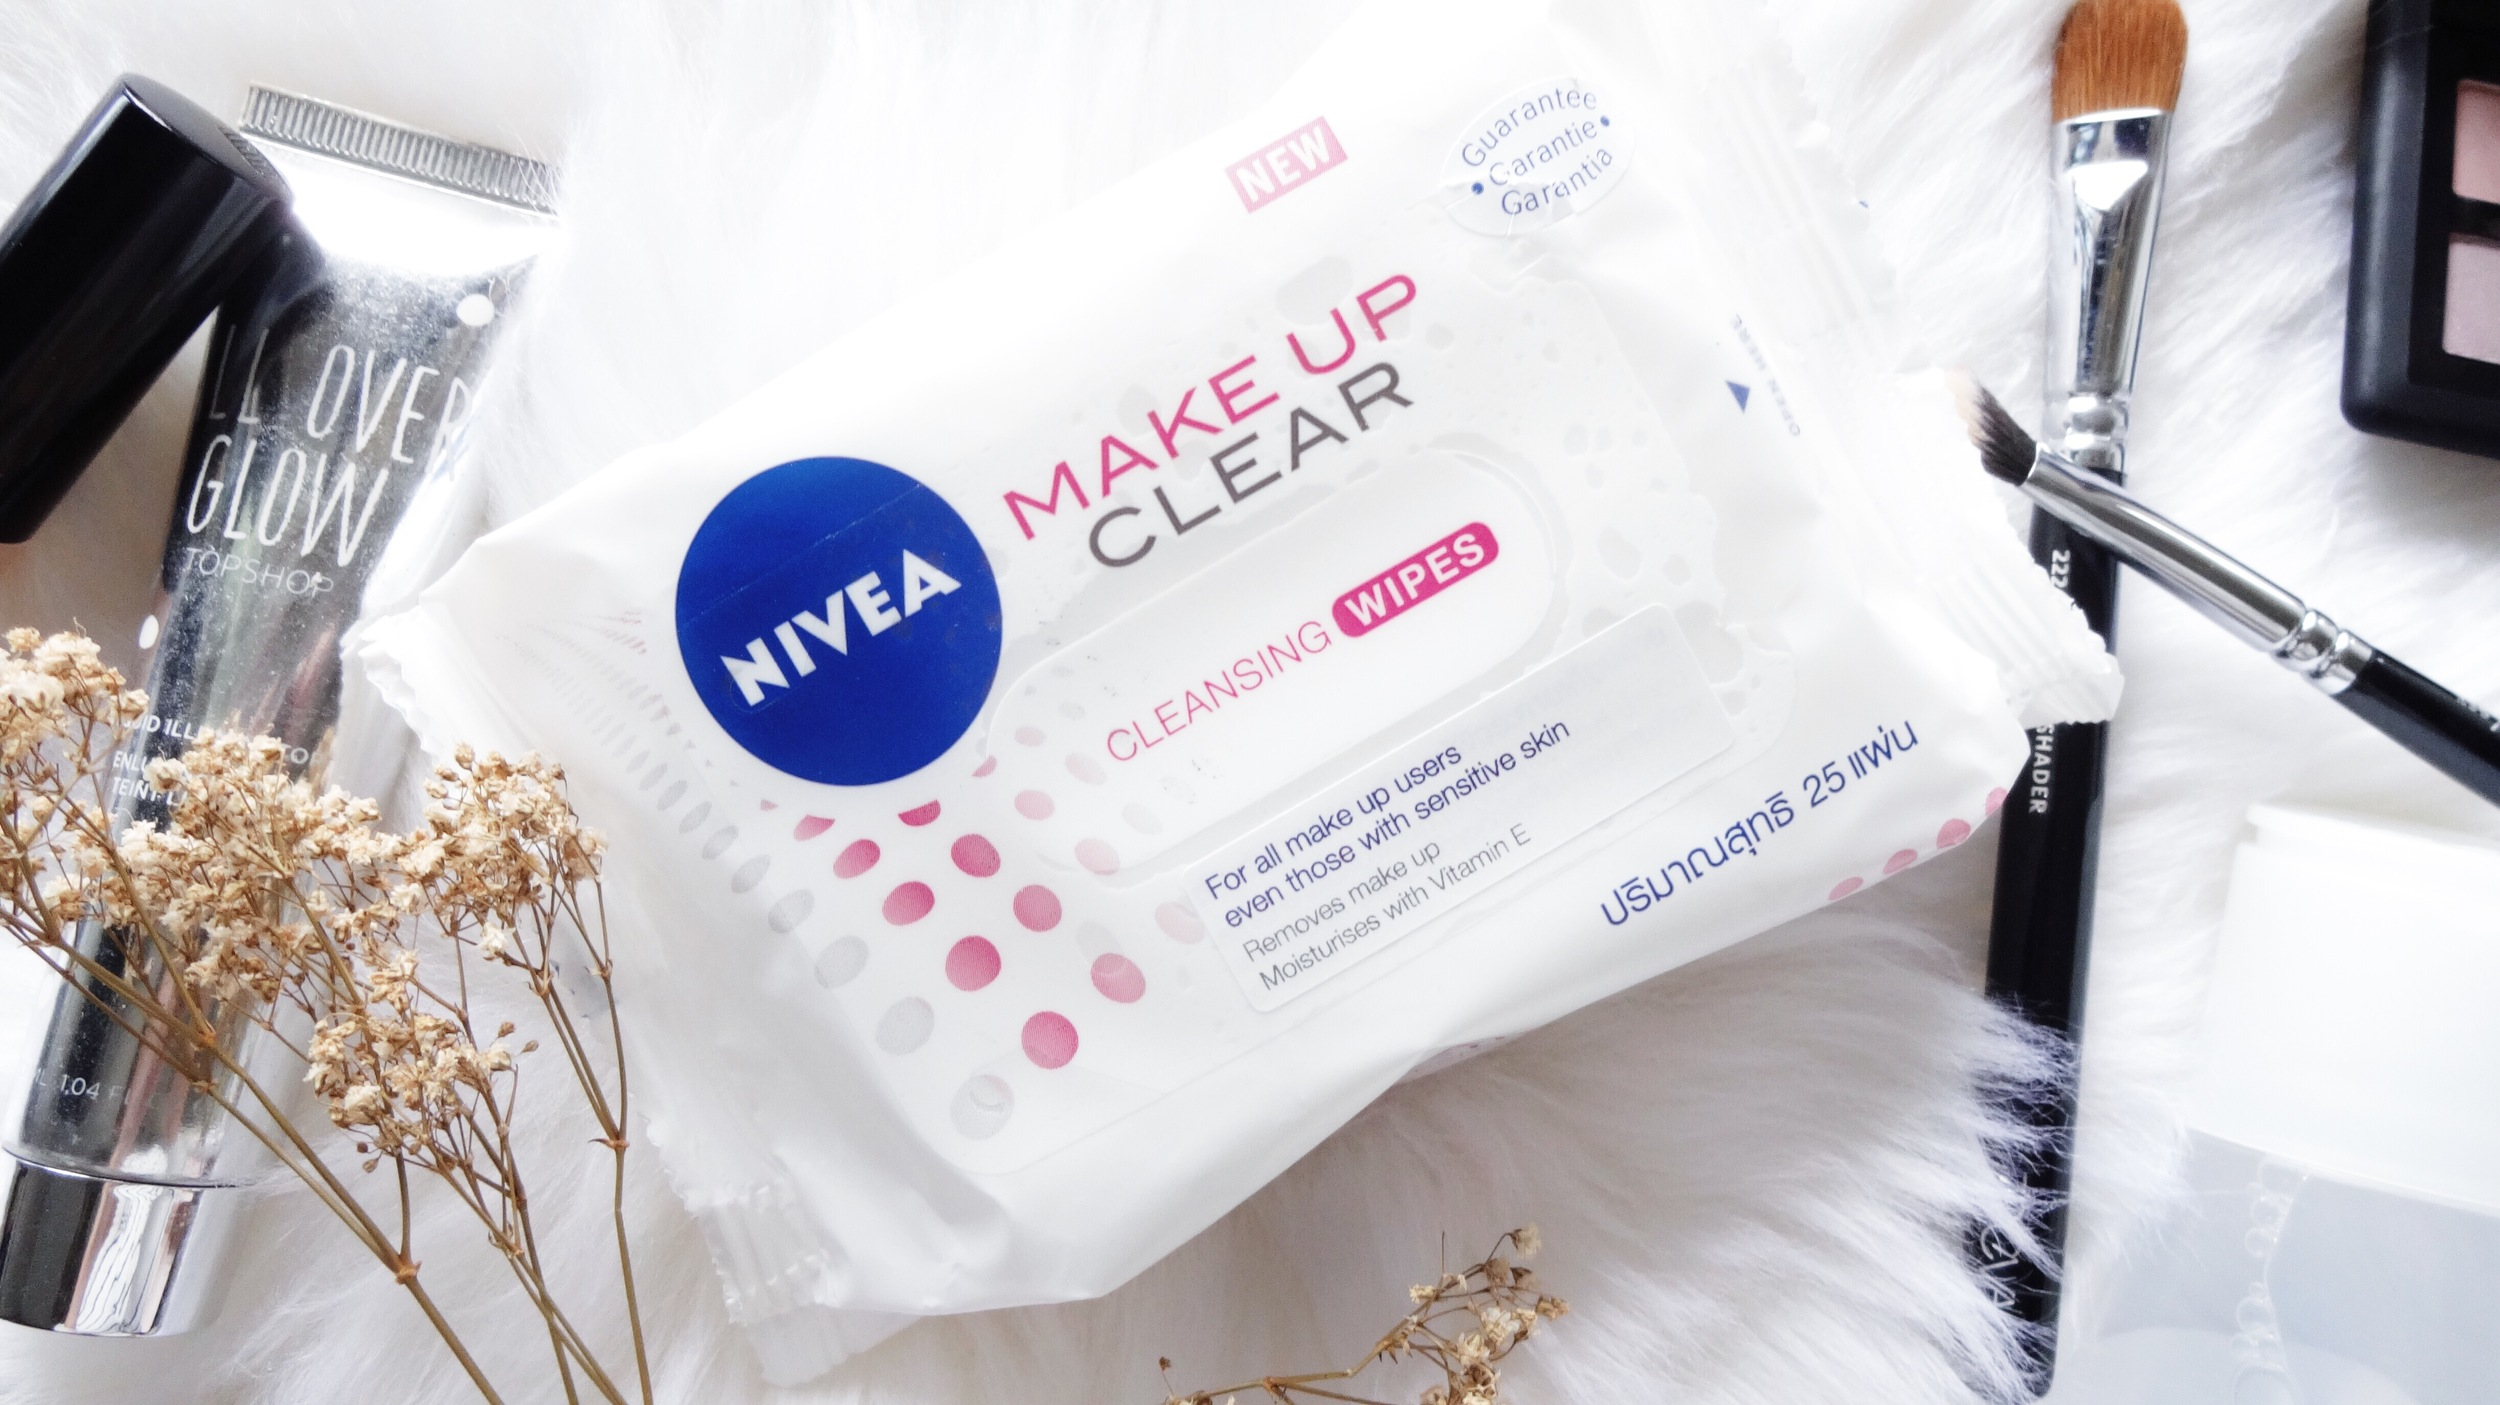 NIVEA Make Up Clear Cleansing Wipes